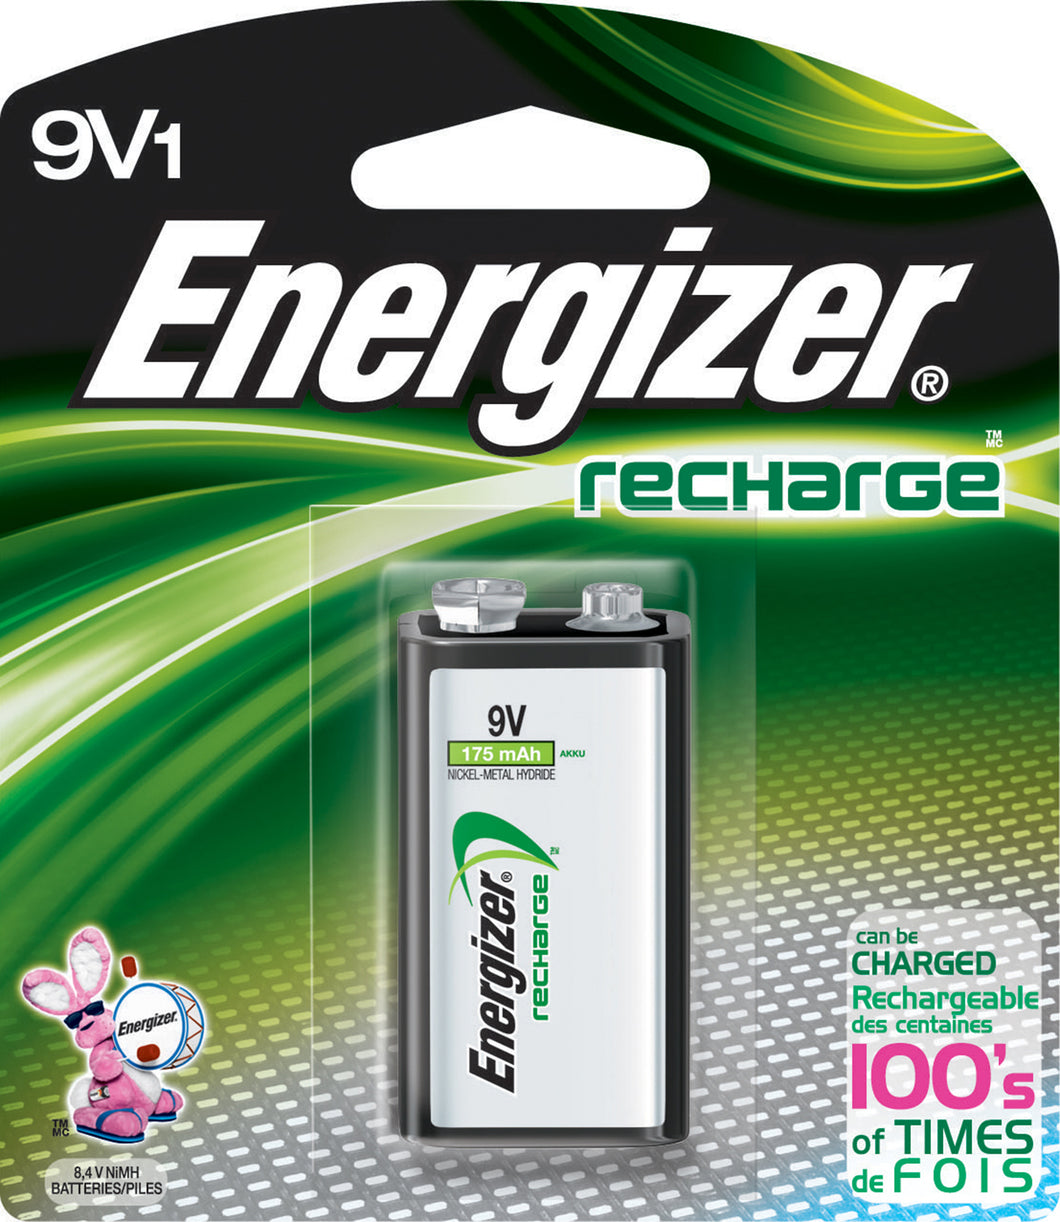 Energizer Recharge 9V Batteries